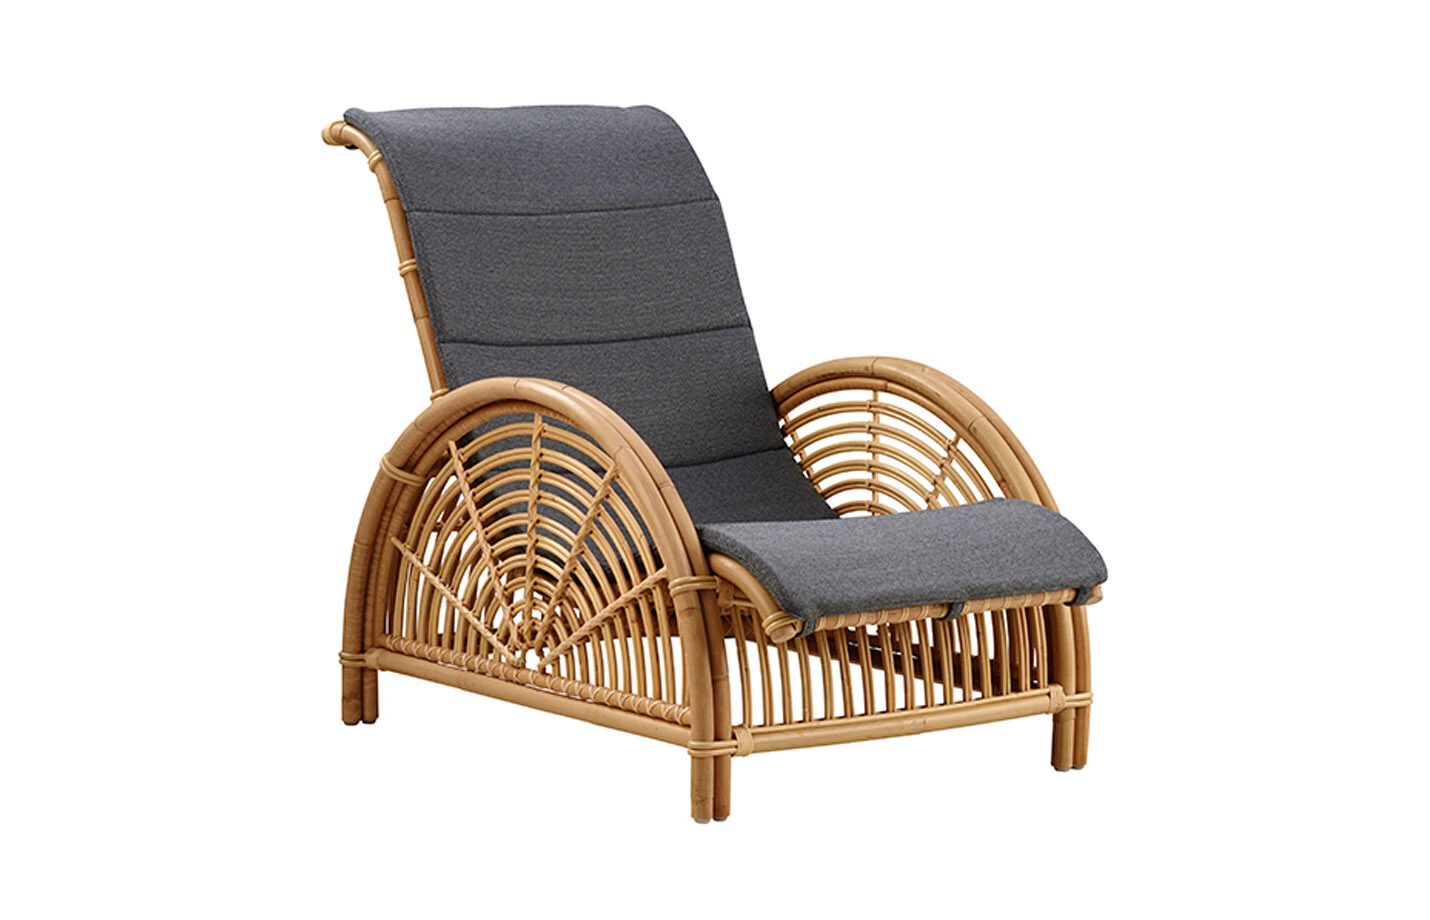 Paris-Lounge-chair-Rattan-With-seat-cushion